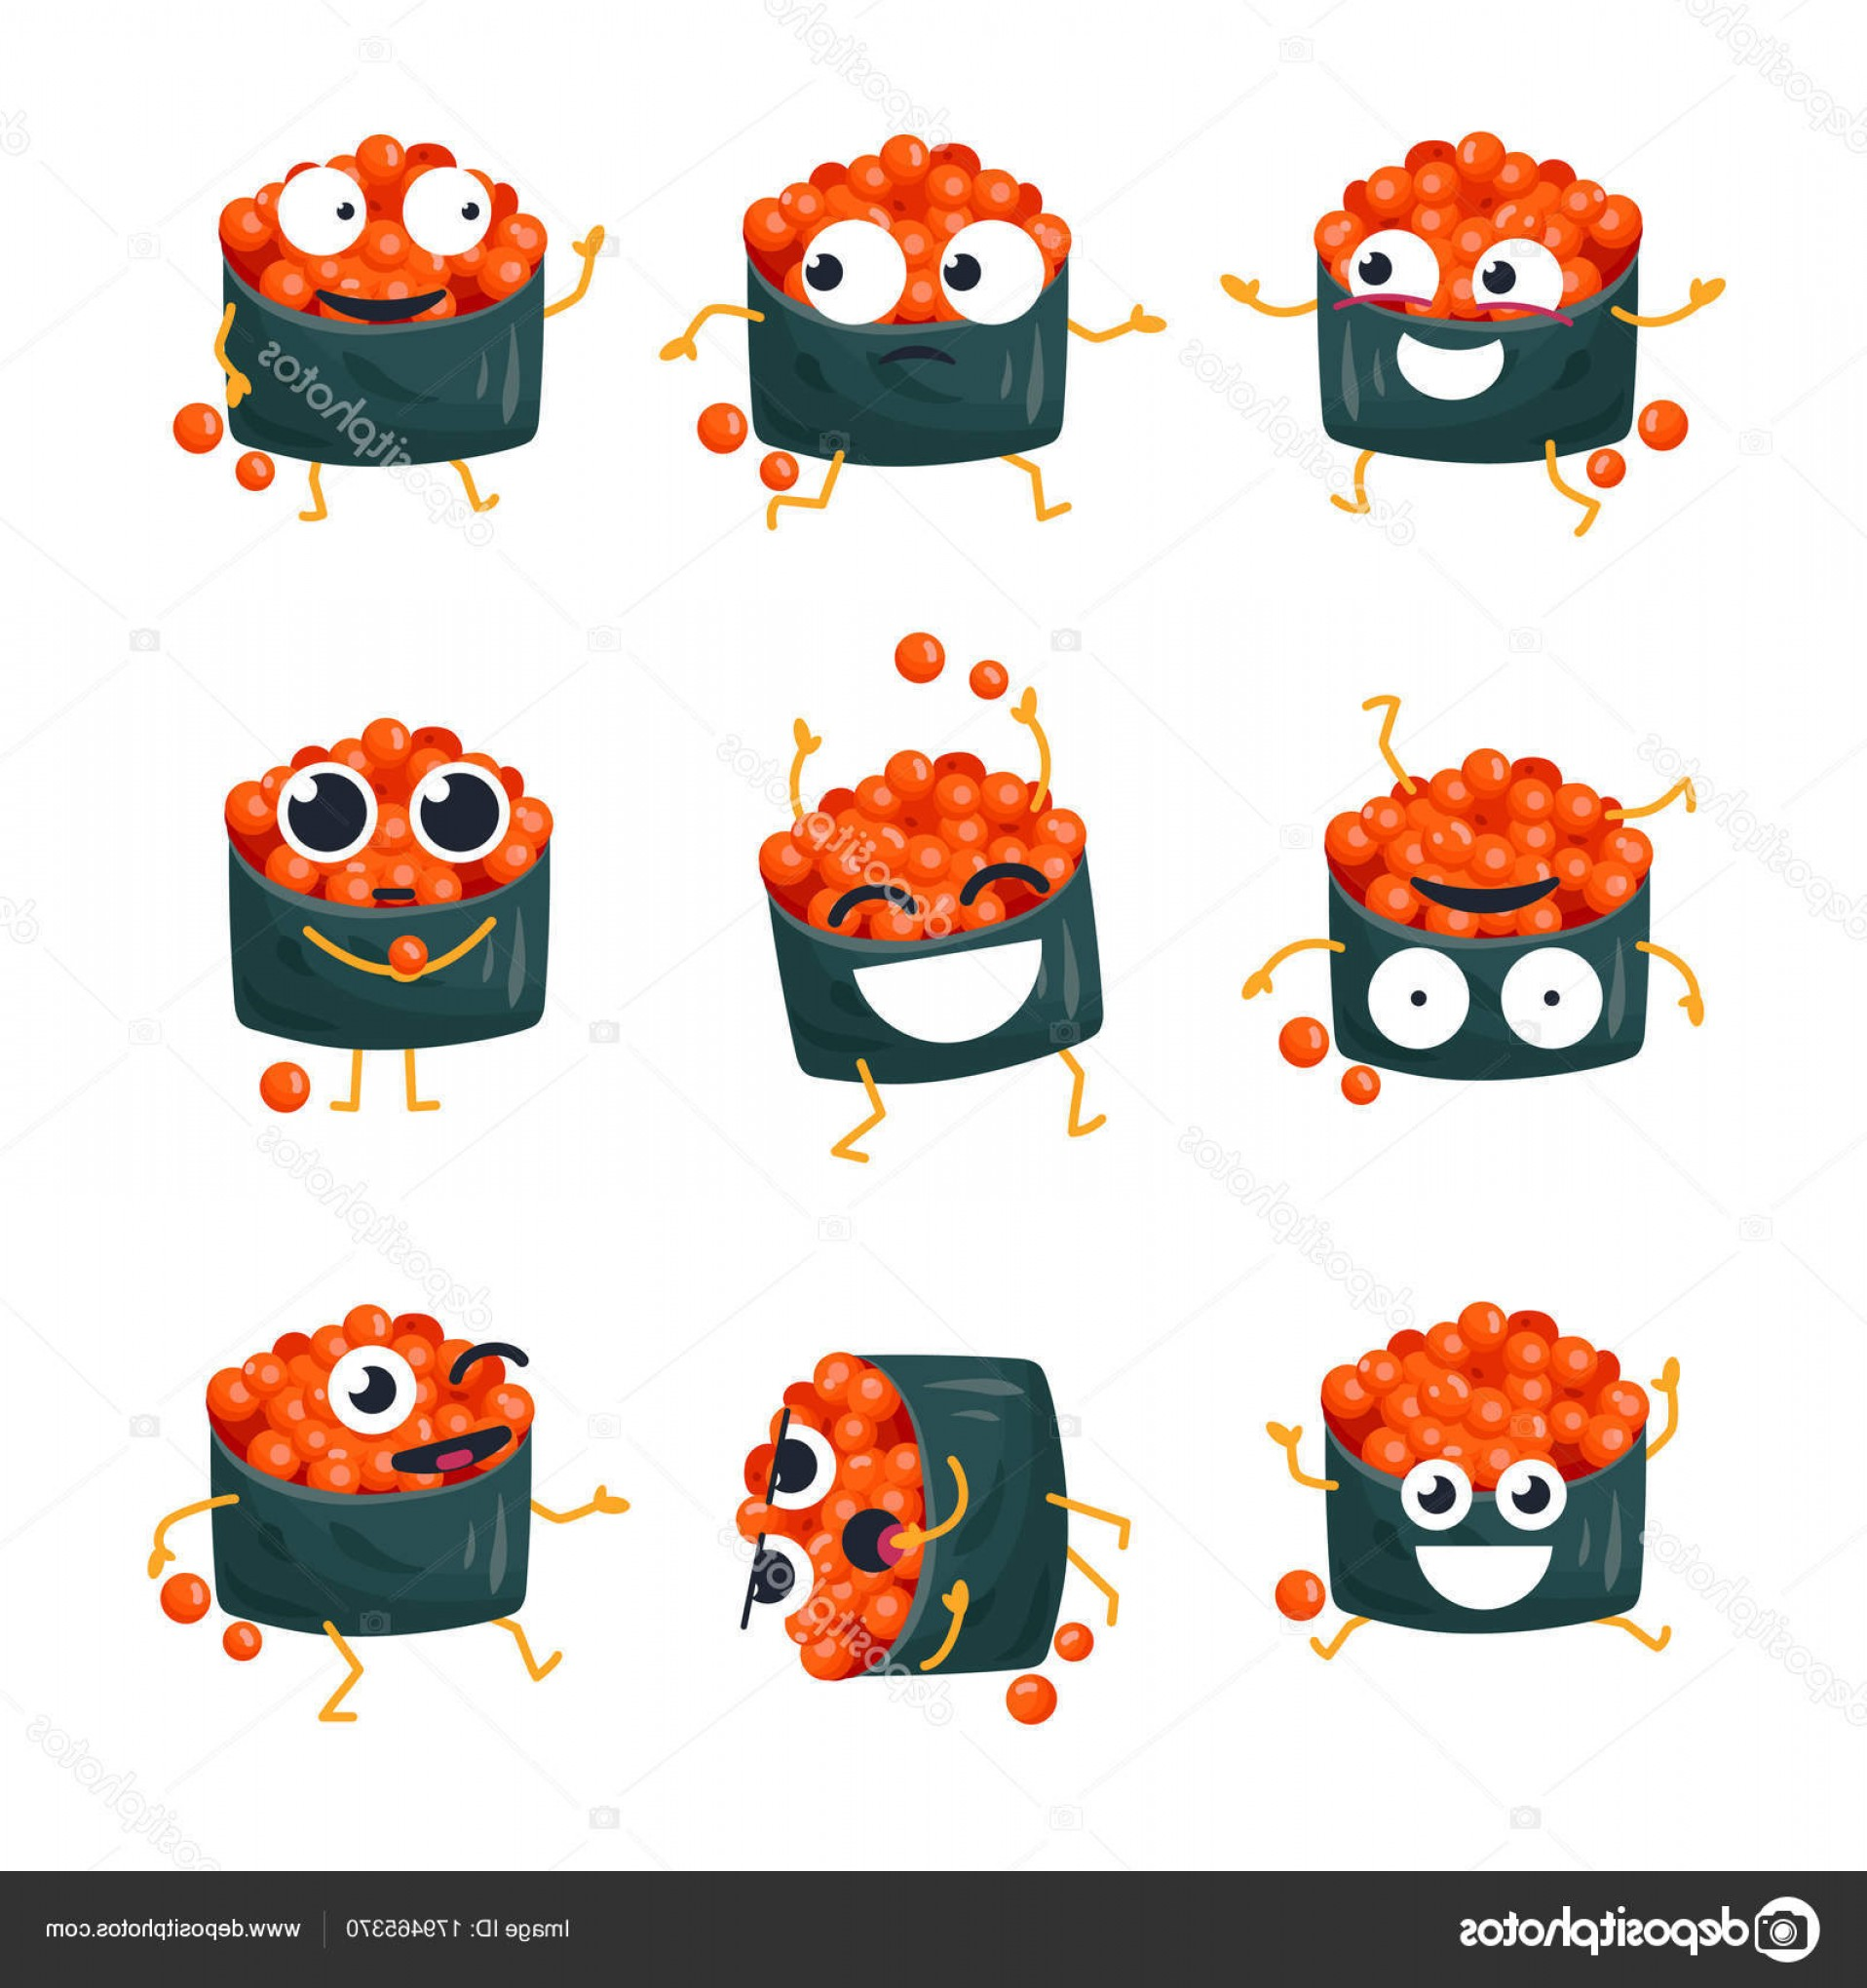 Sushi Vector Art: Stock Illustration Funny Sushi With Red Caviar